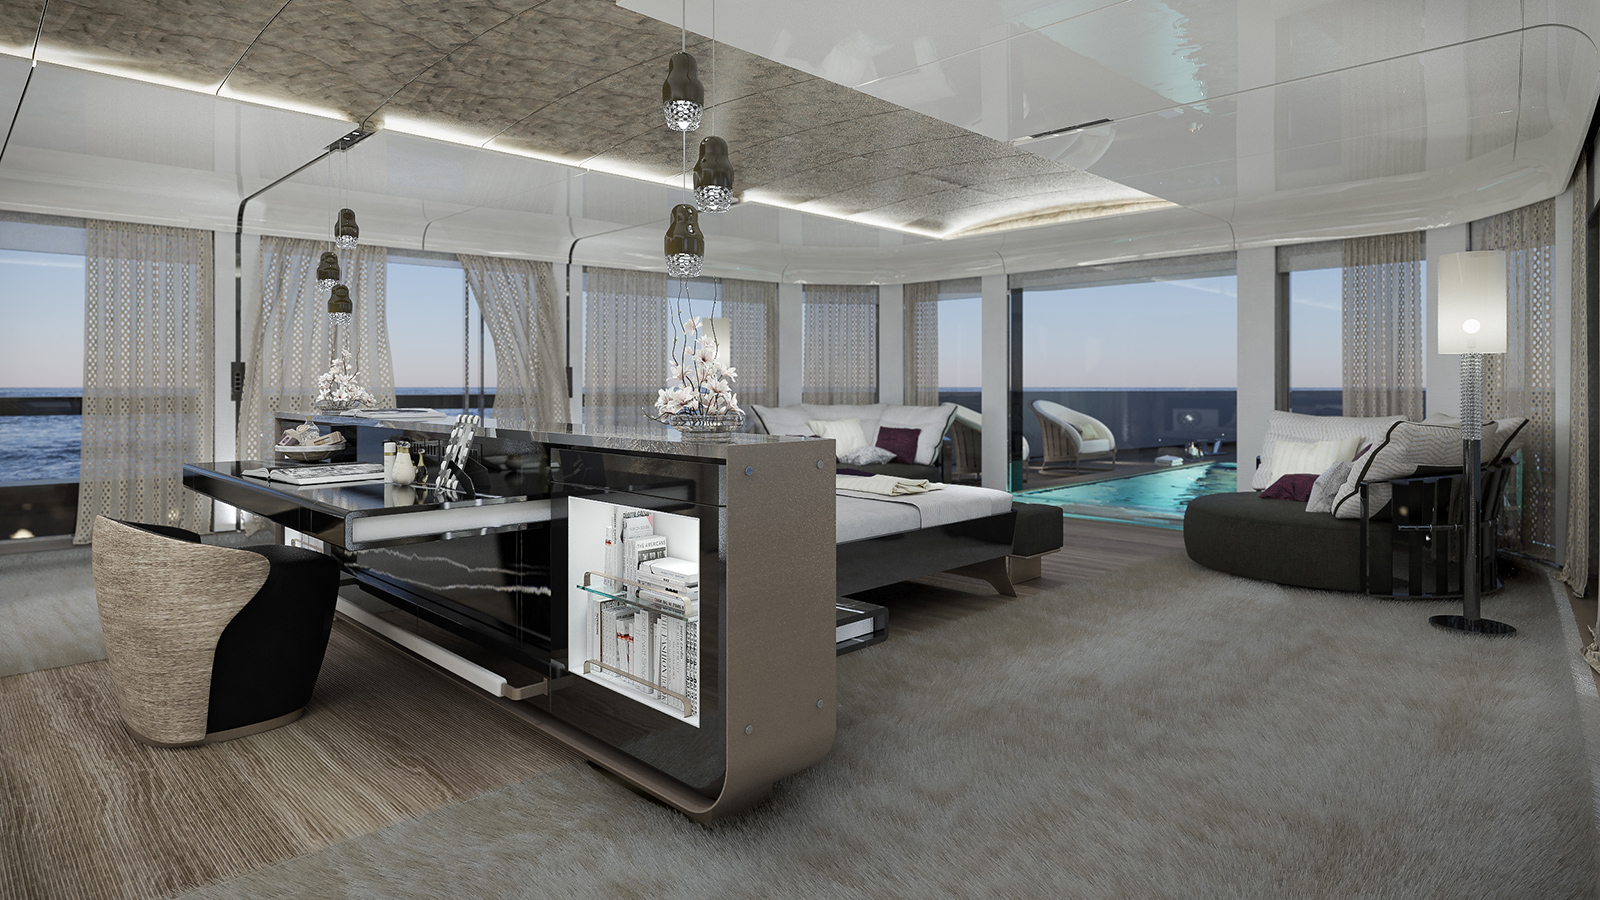 the-owners-cabin-on-the-sarp-yachts-concept-aouda-by-hot-lab-design